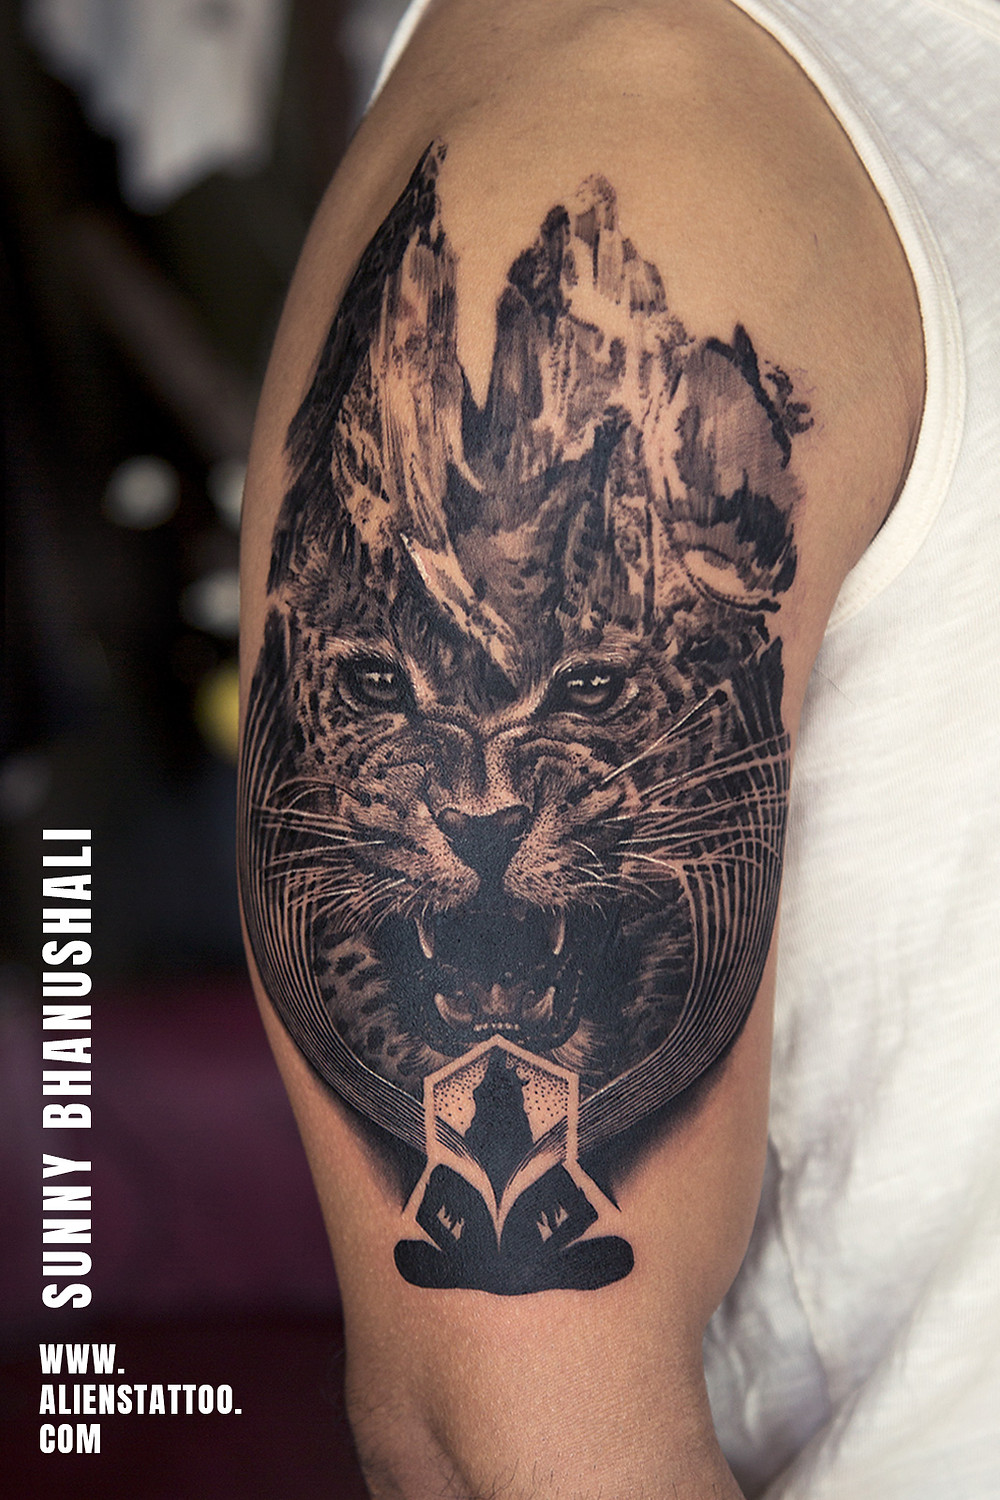 Tiger Tattoo - Animal Tatoo - Aliens Tattoo